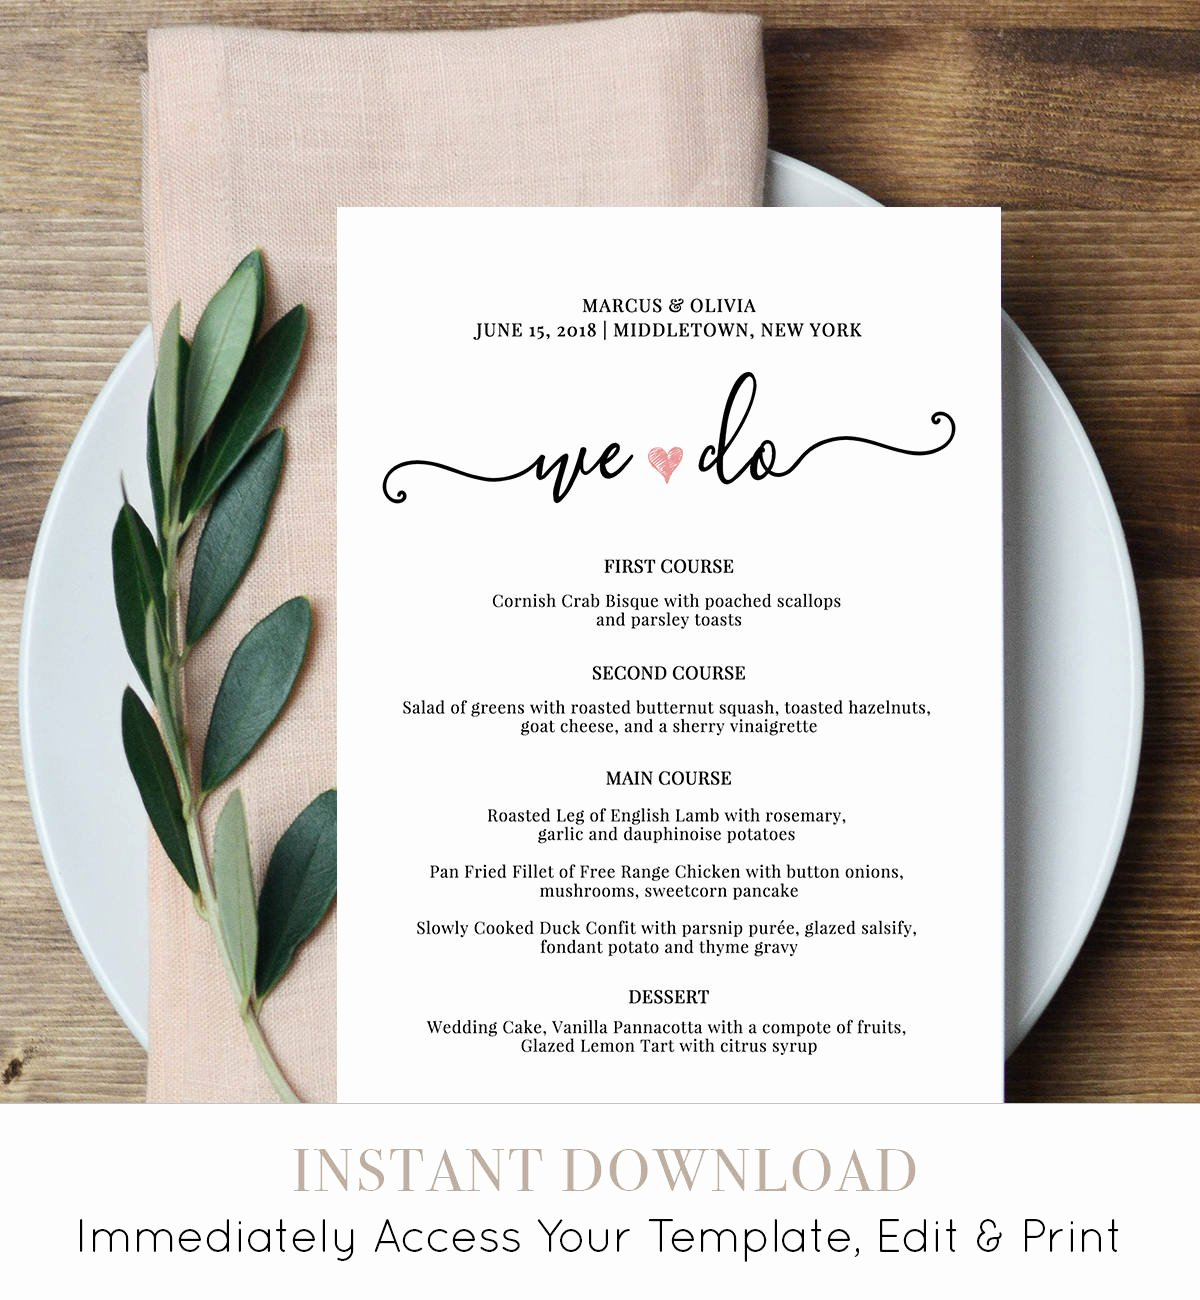 Wedding Menu Card Template New Wedding Menu Card Template We Do Printable Dinner Menu